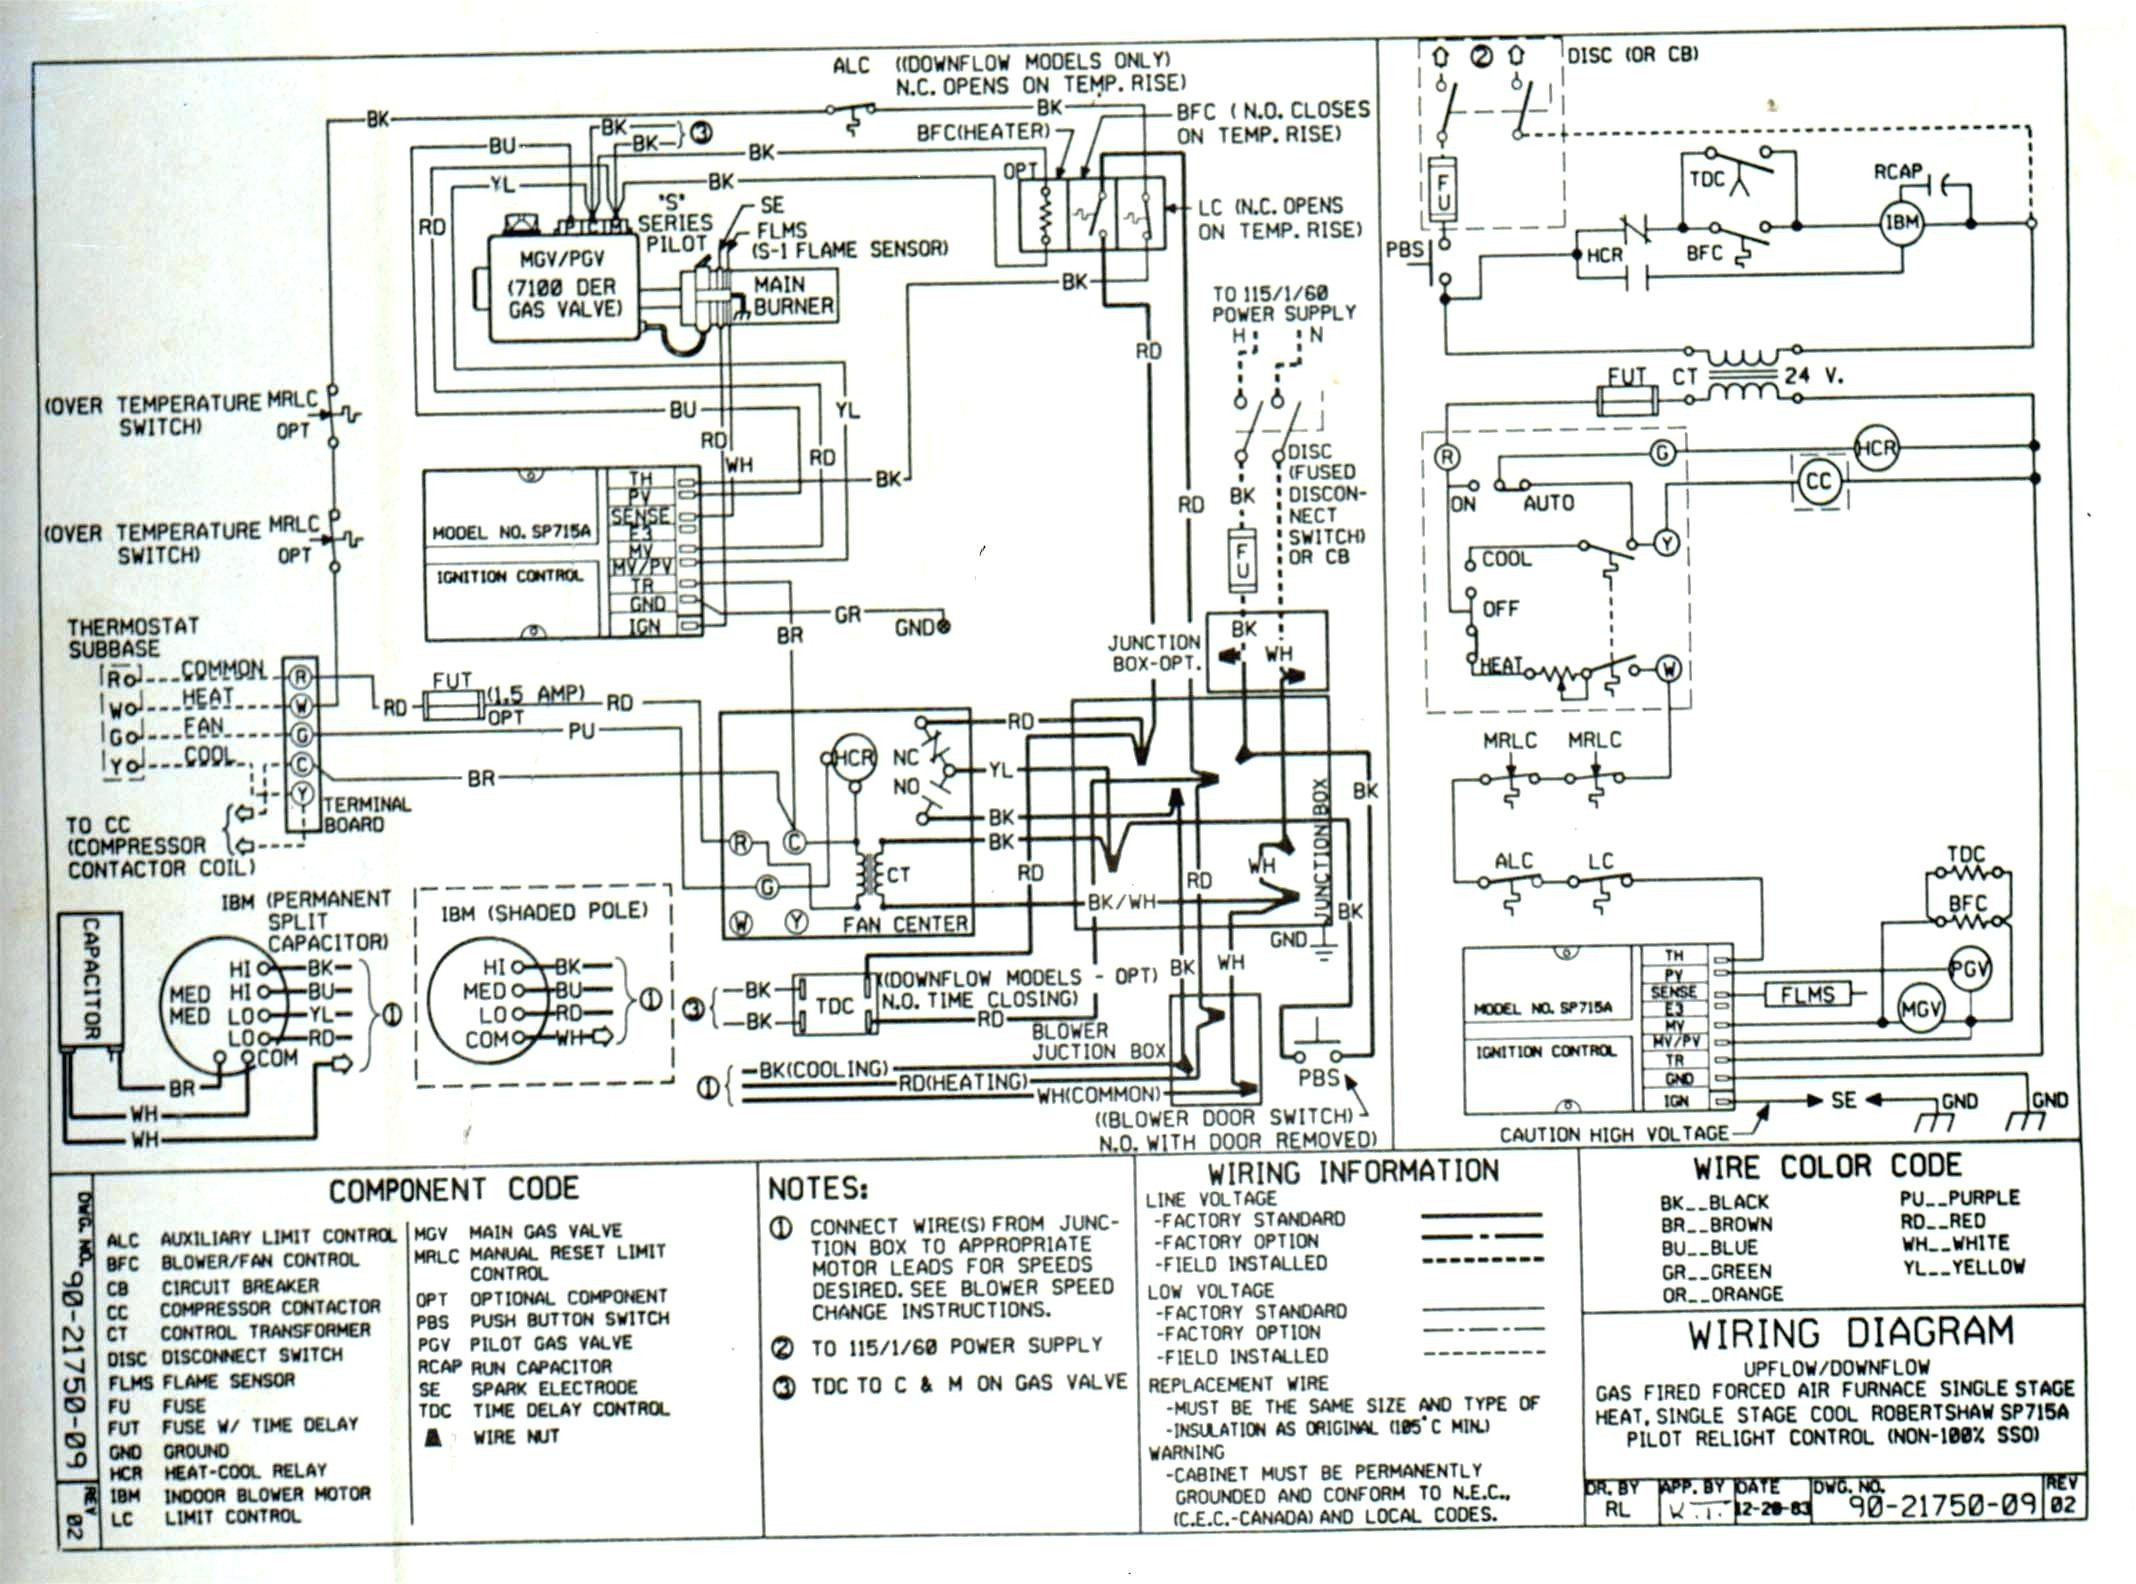 Totaline thermostat Wiring Diagram Gallery Heat Pump Air Conditioner nordyne Heat Pump thermostat Wiring